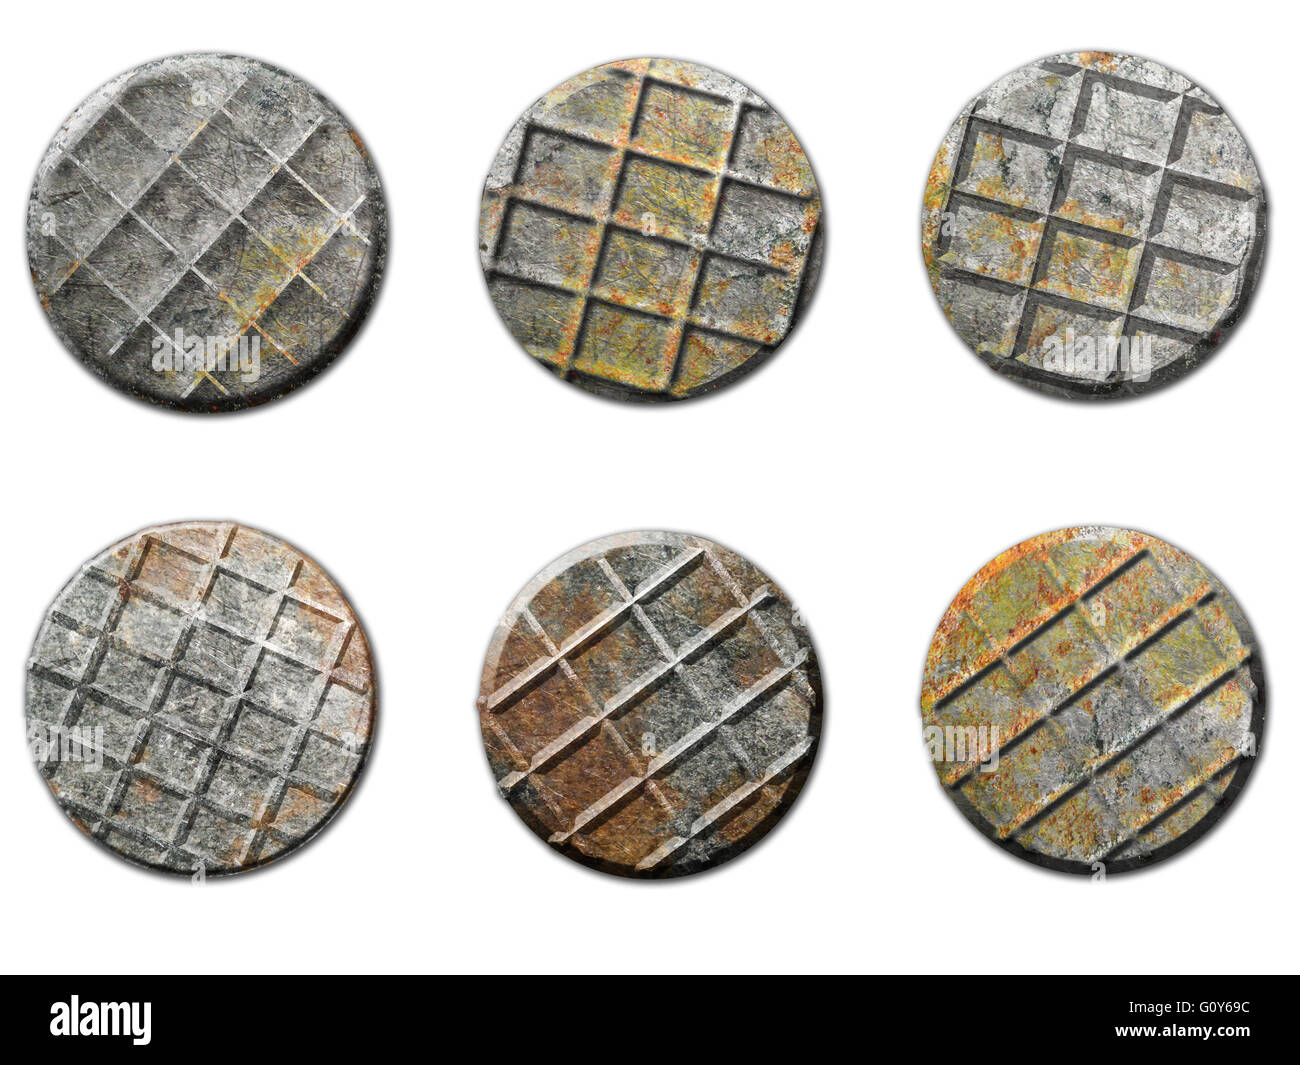 Old Rusty Nail Heads Image isolated on white - Stock Image